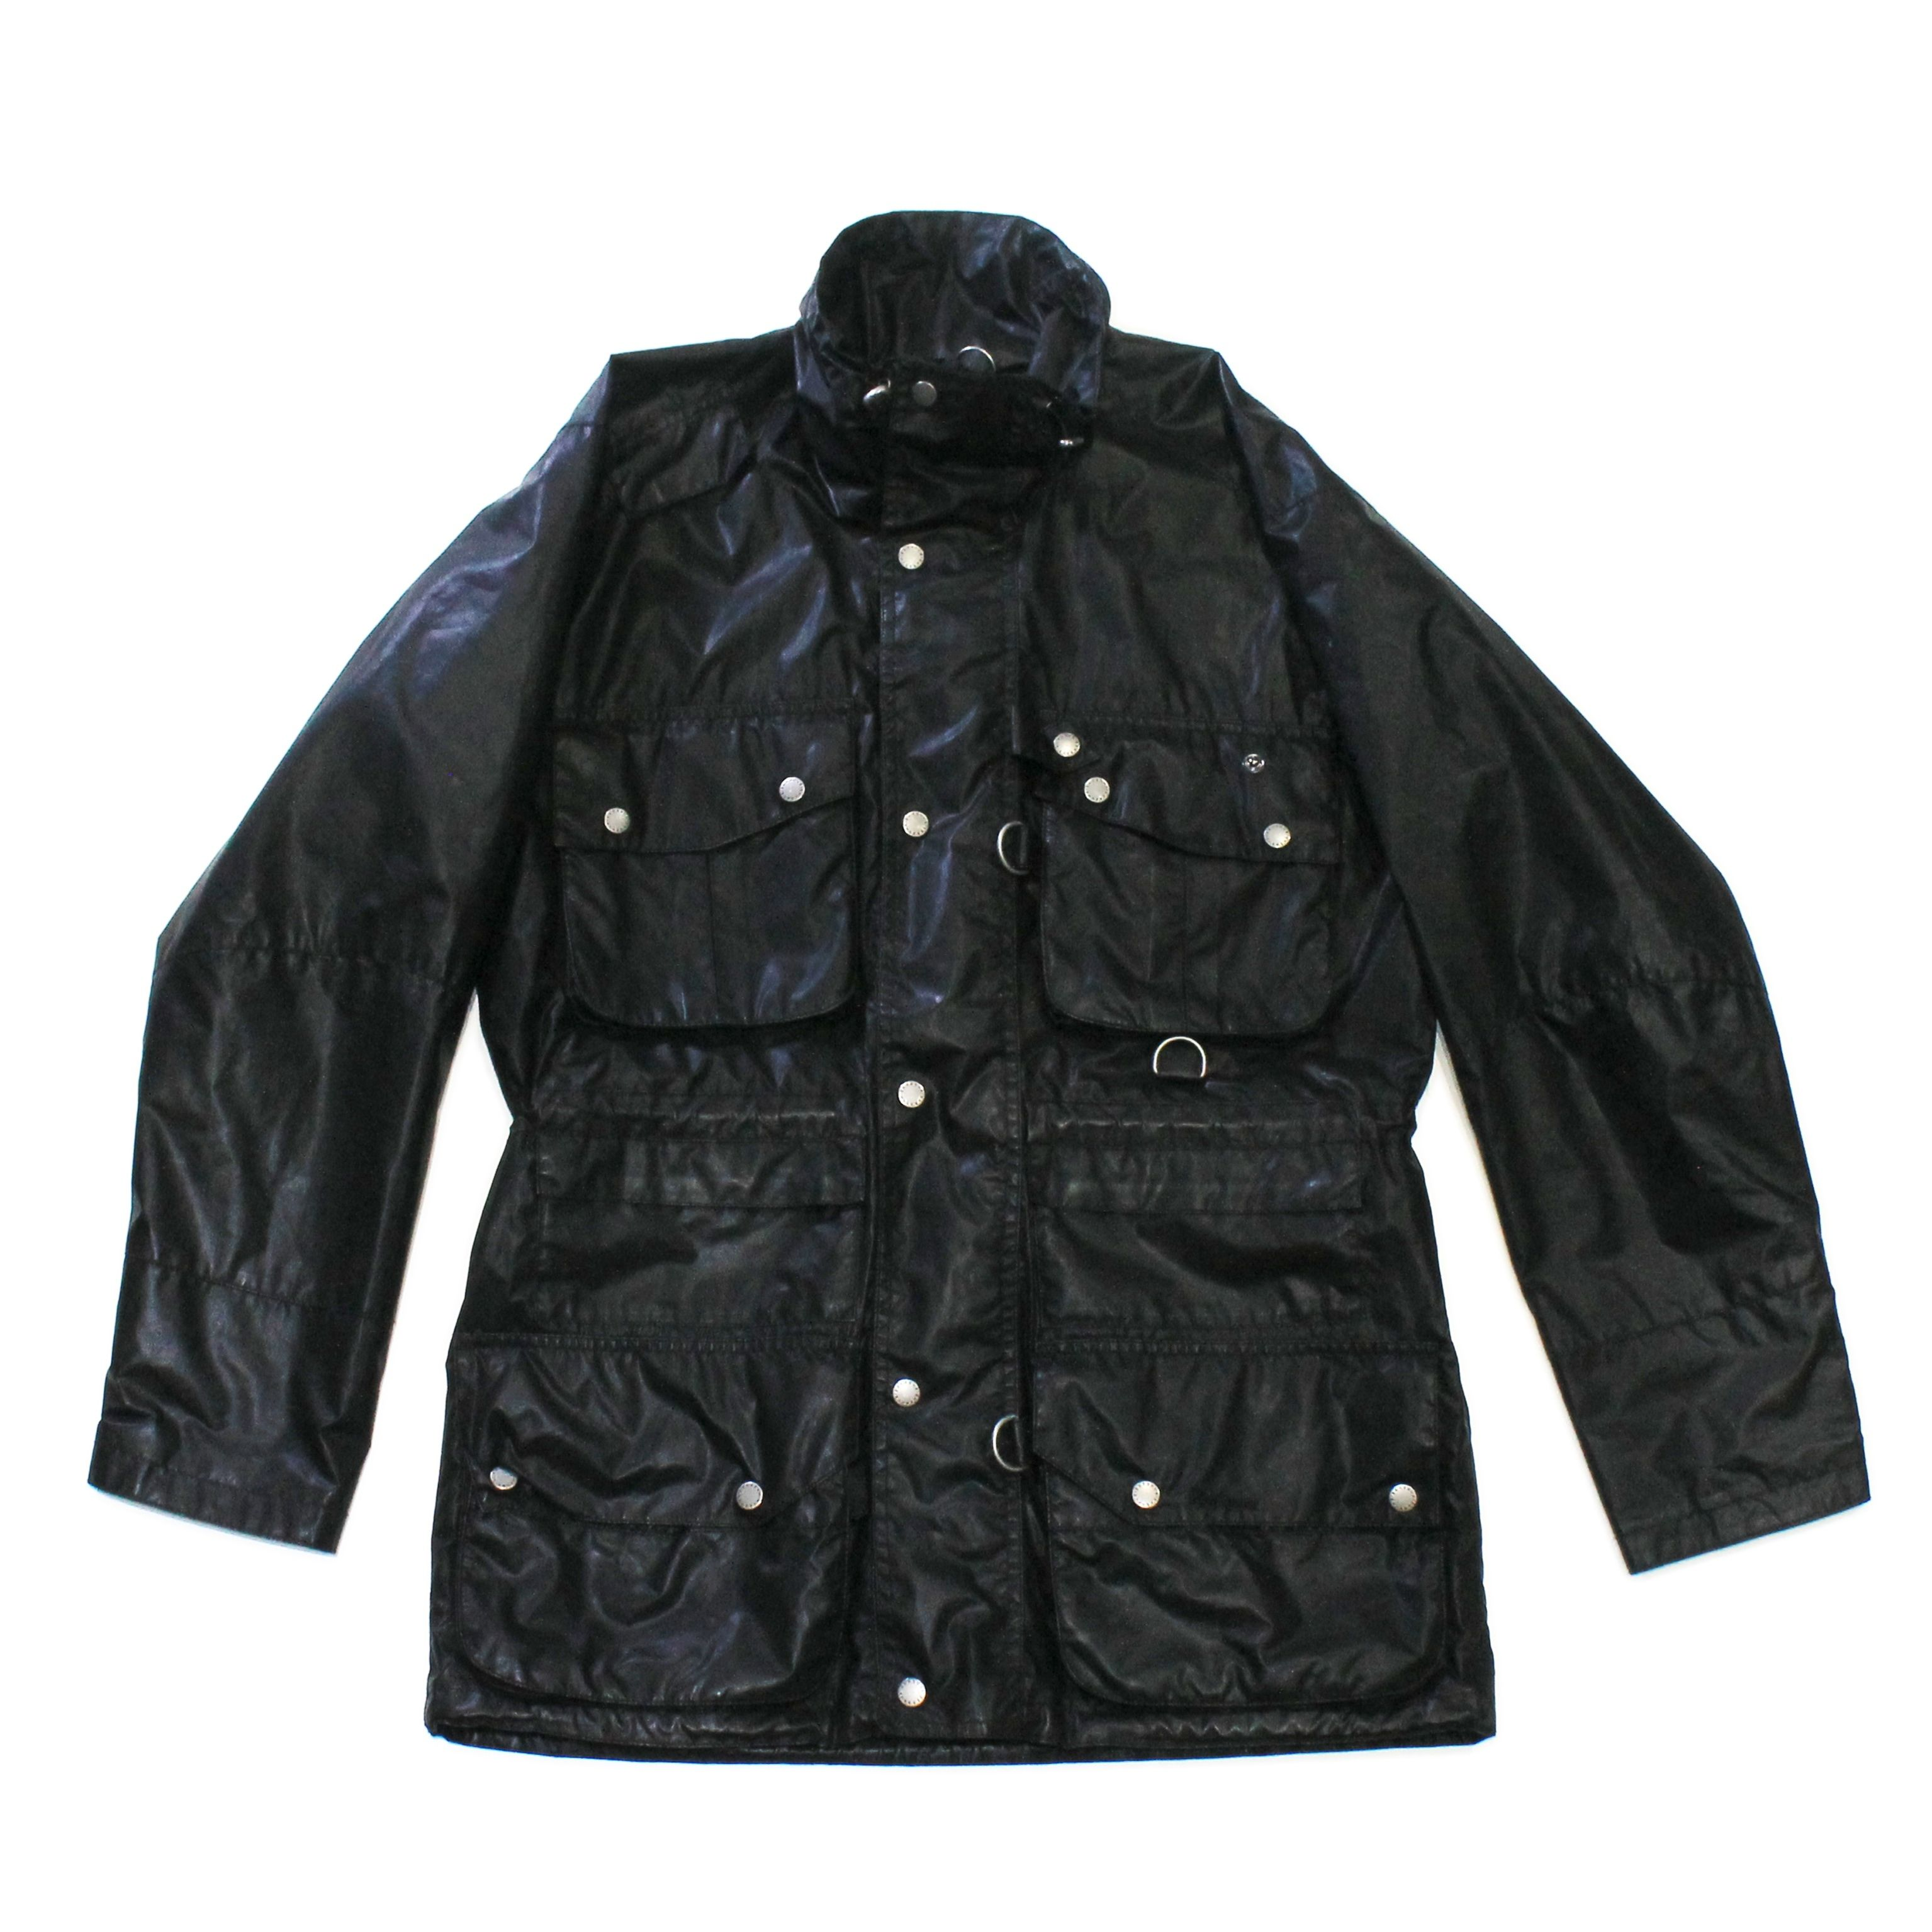 Barbour W/P Nylon Jacket  from family style